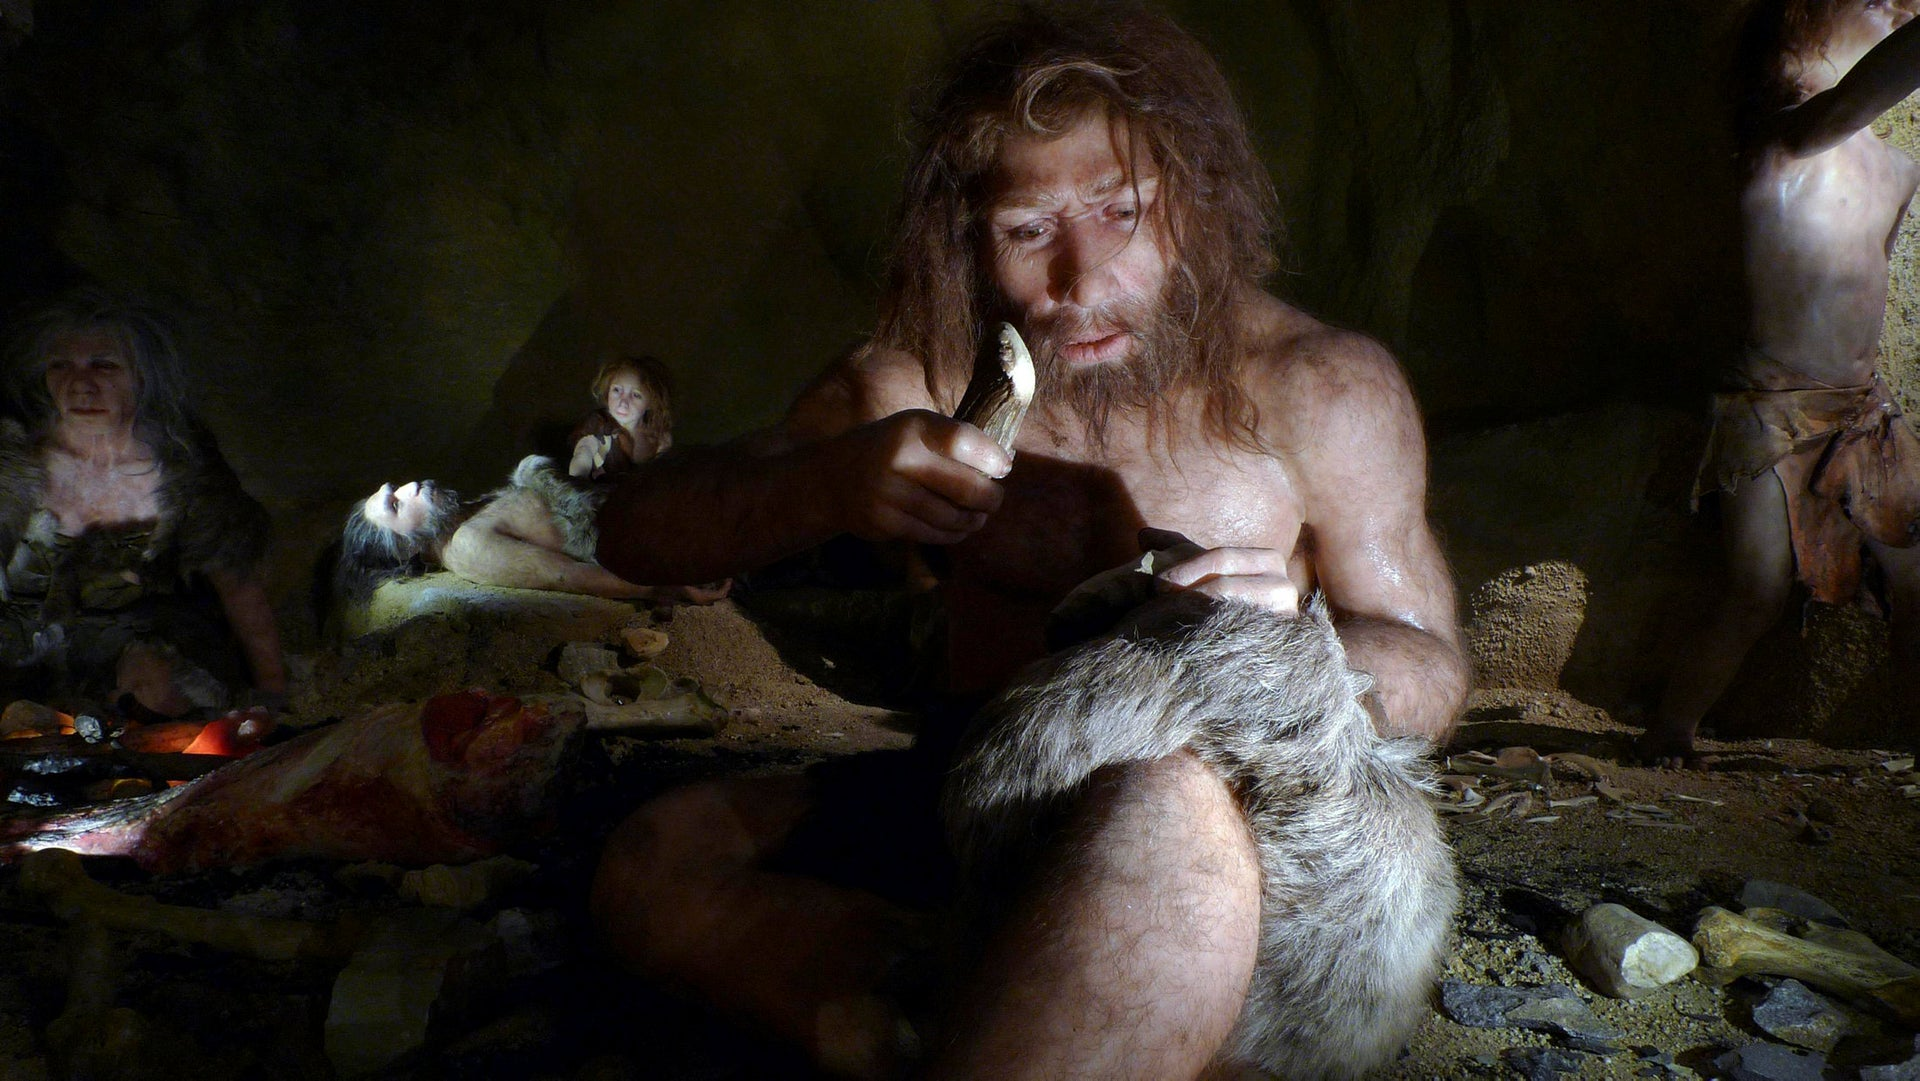 Reconstruction of a Neanderthal family, based on finds in Krapina, Croatia